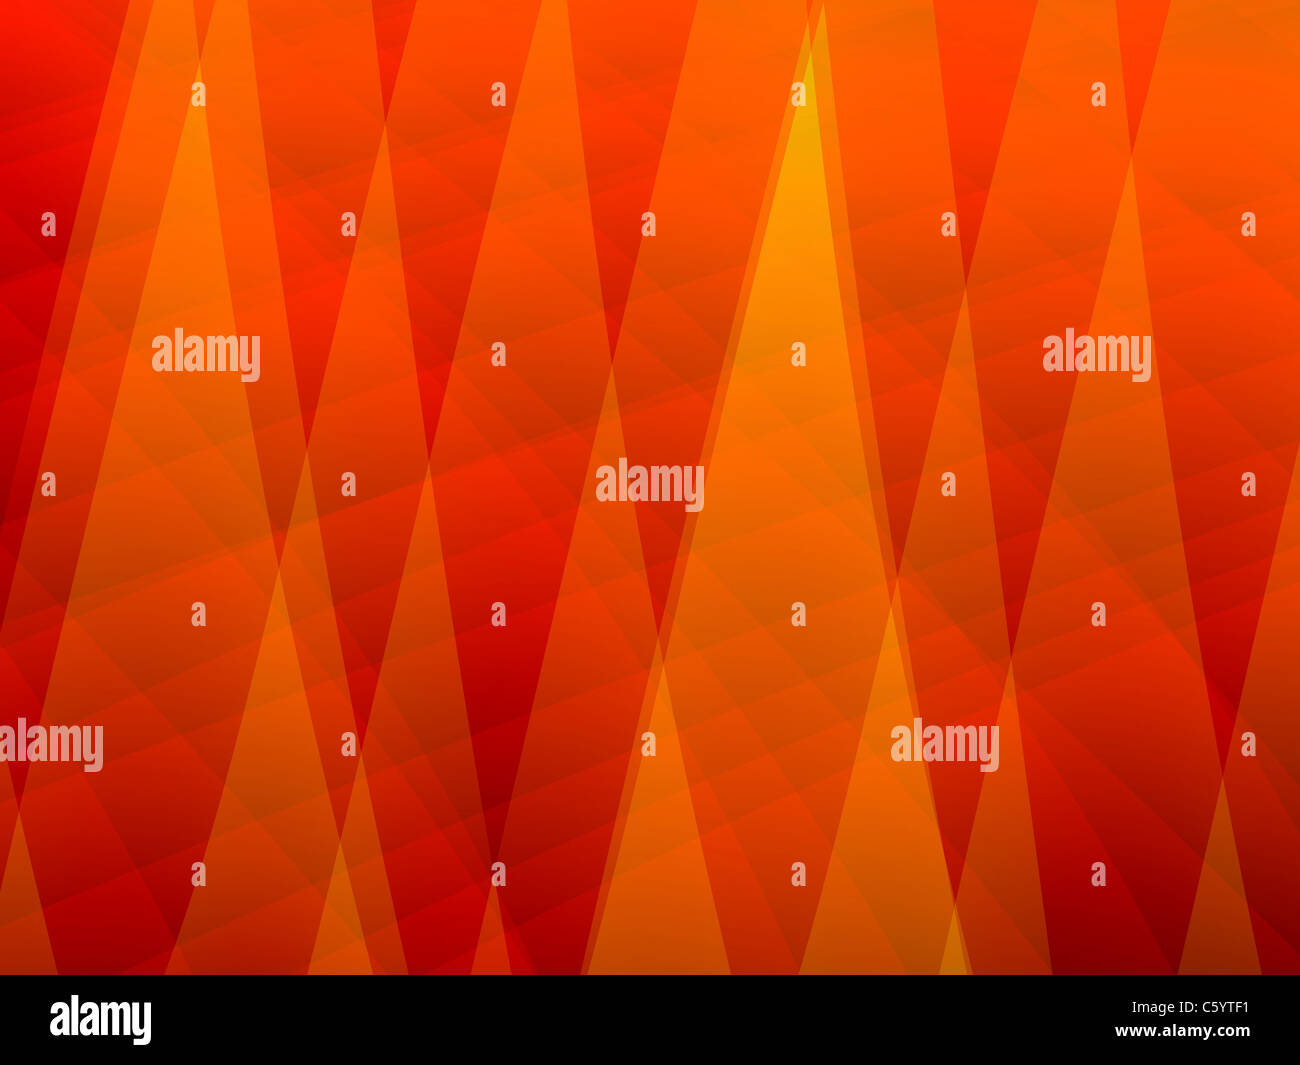 Abstract Orange Background - Stock Image